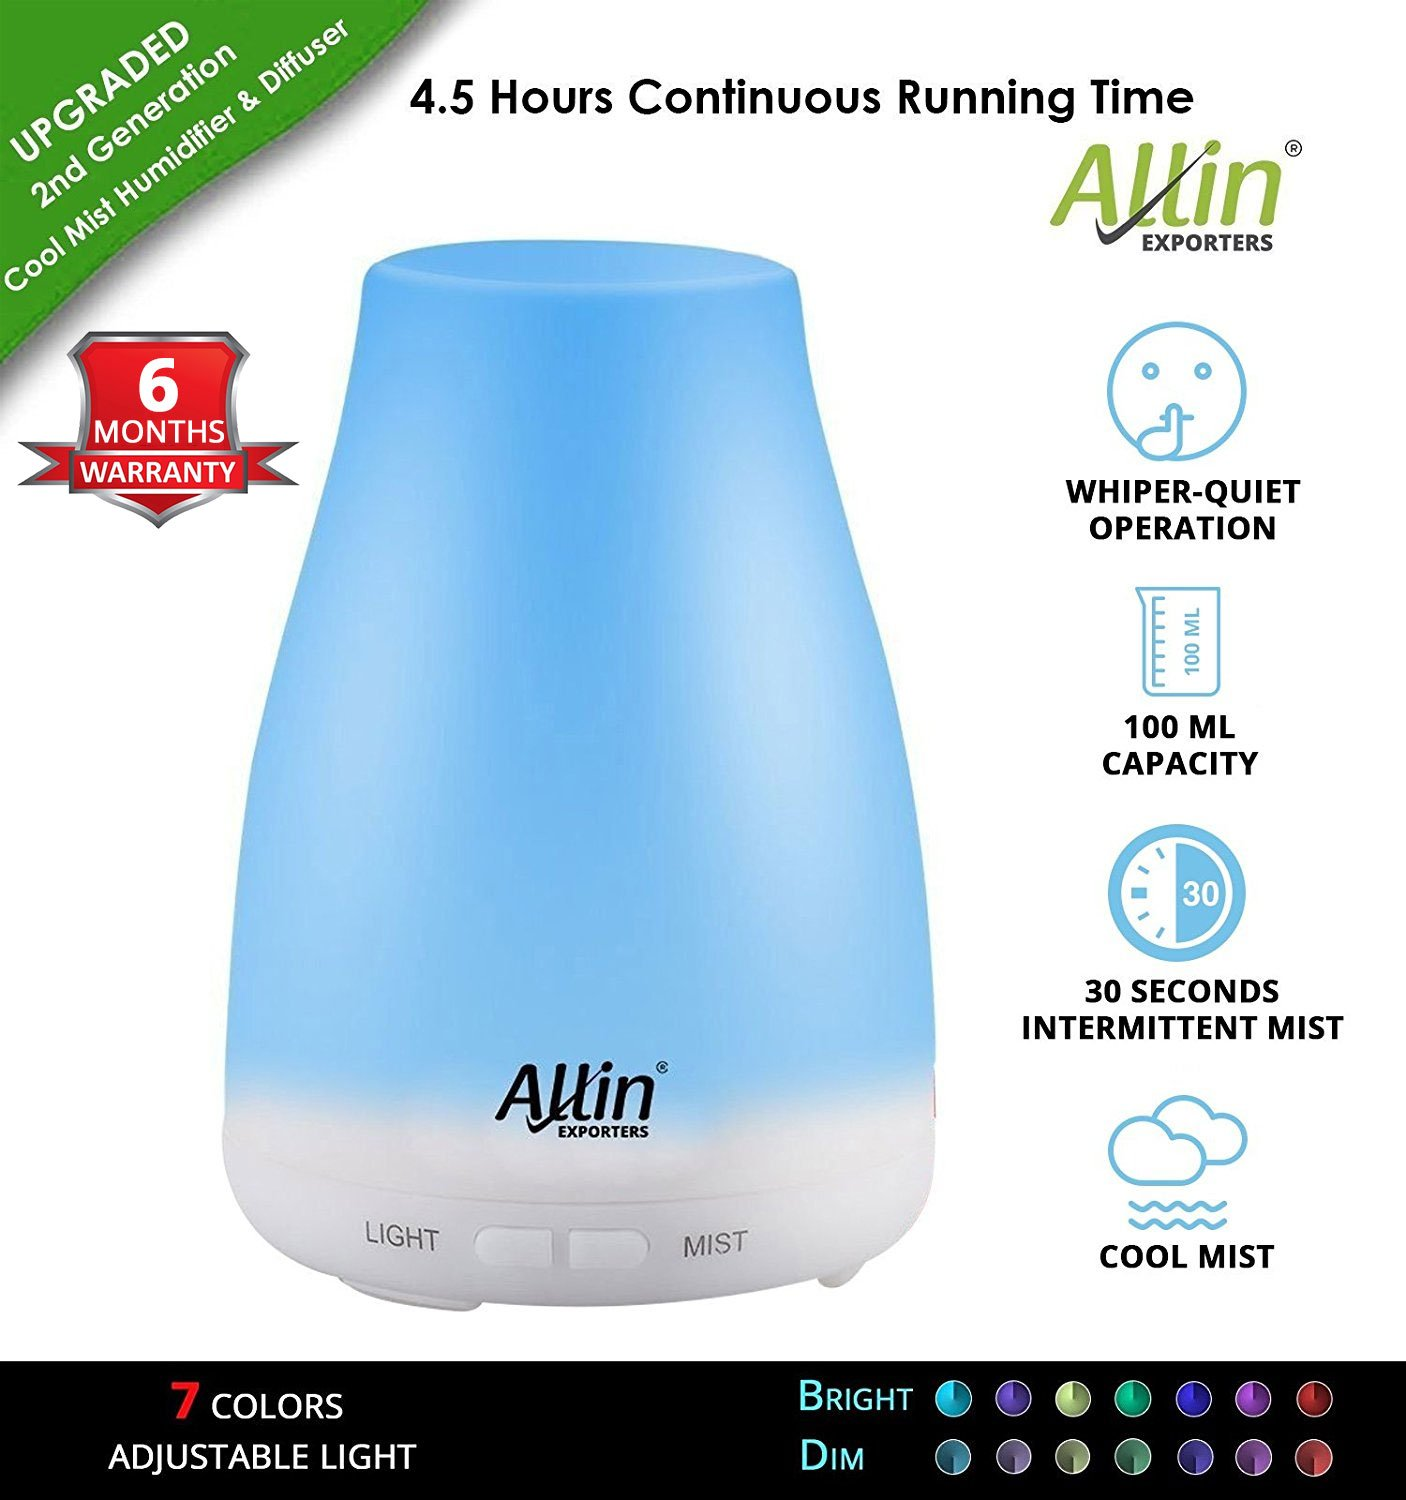 Best Rated In Home Fragrance Helpful Customer Reviews Buds Organics Mozzie Clear Spray 100ml Allin Exporters Electronic Ultrasonic Aroma Diffuser And Humidifier 2 1 Tank Capacity 6